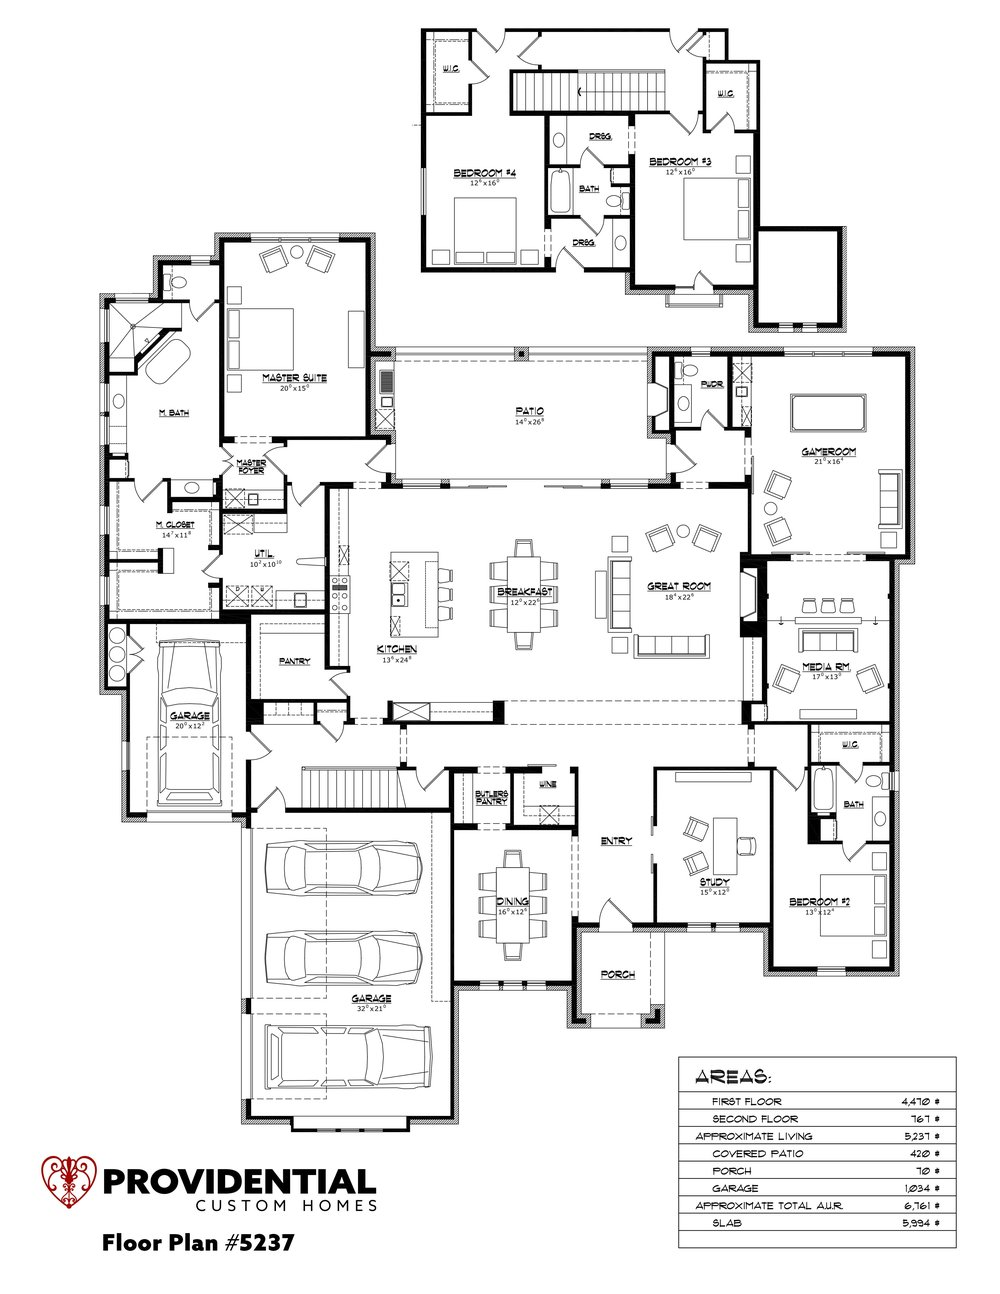 The FLOOR PLAN #5237.jpg